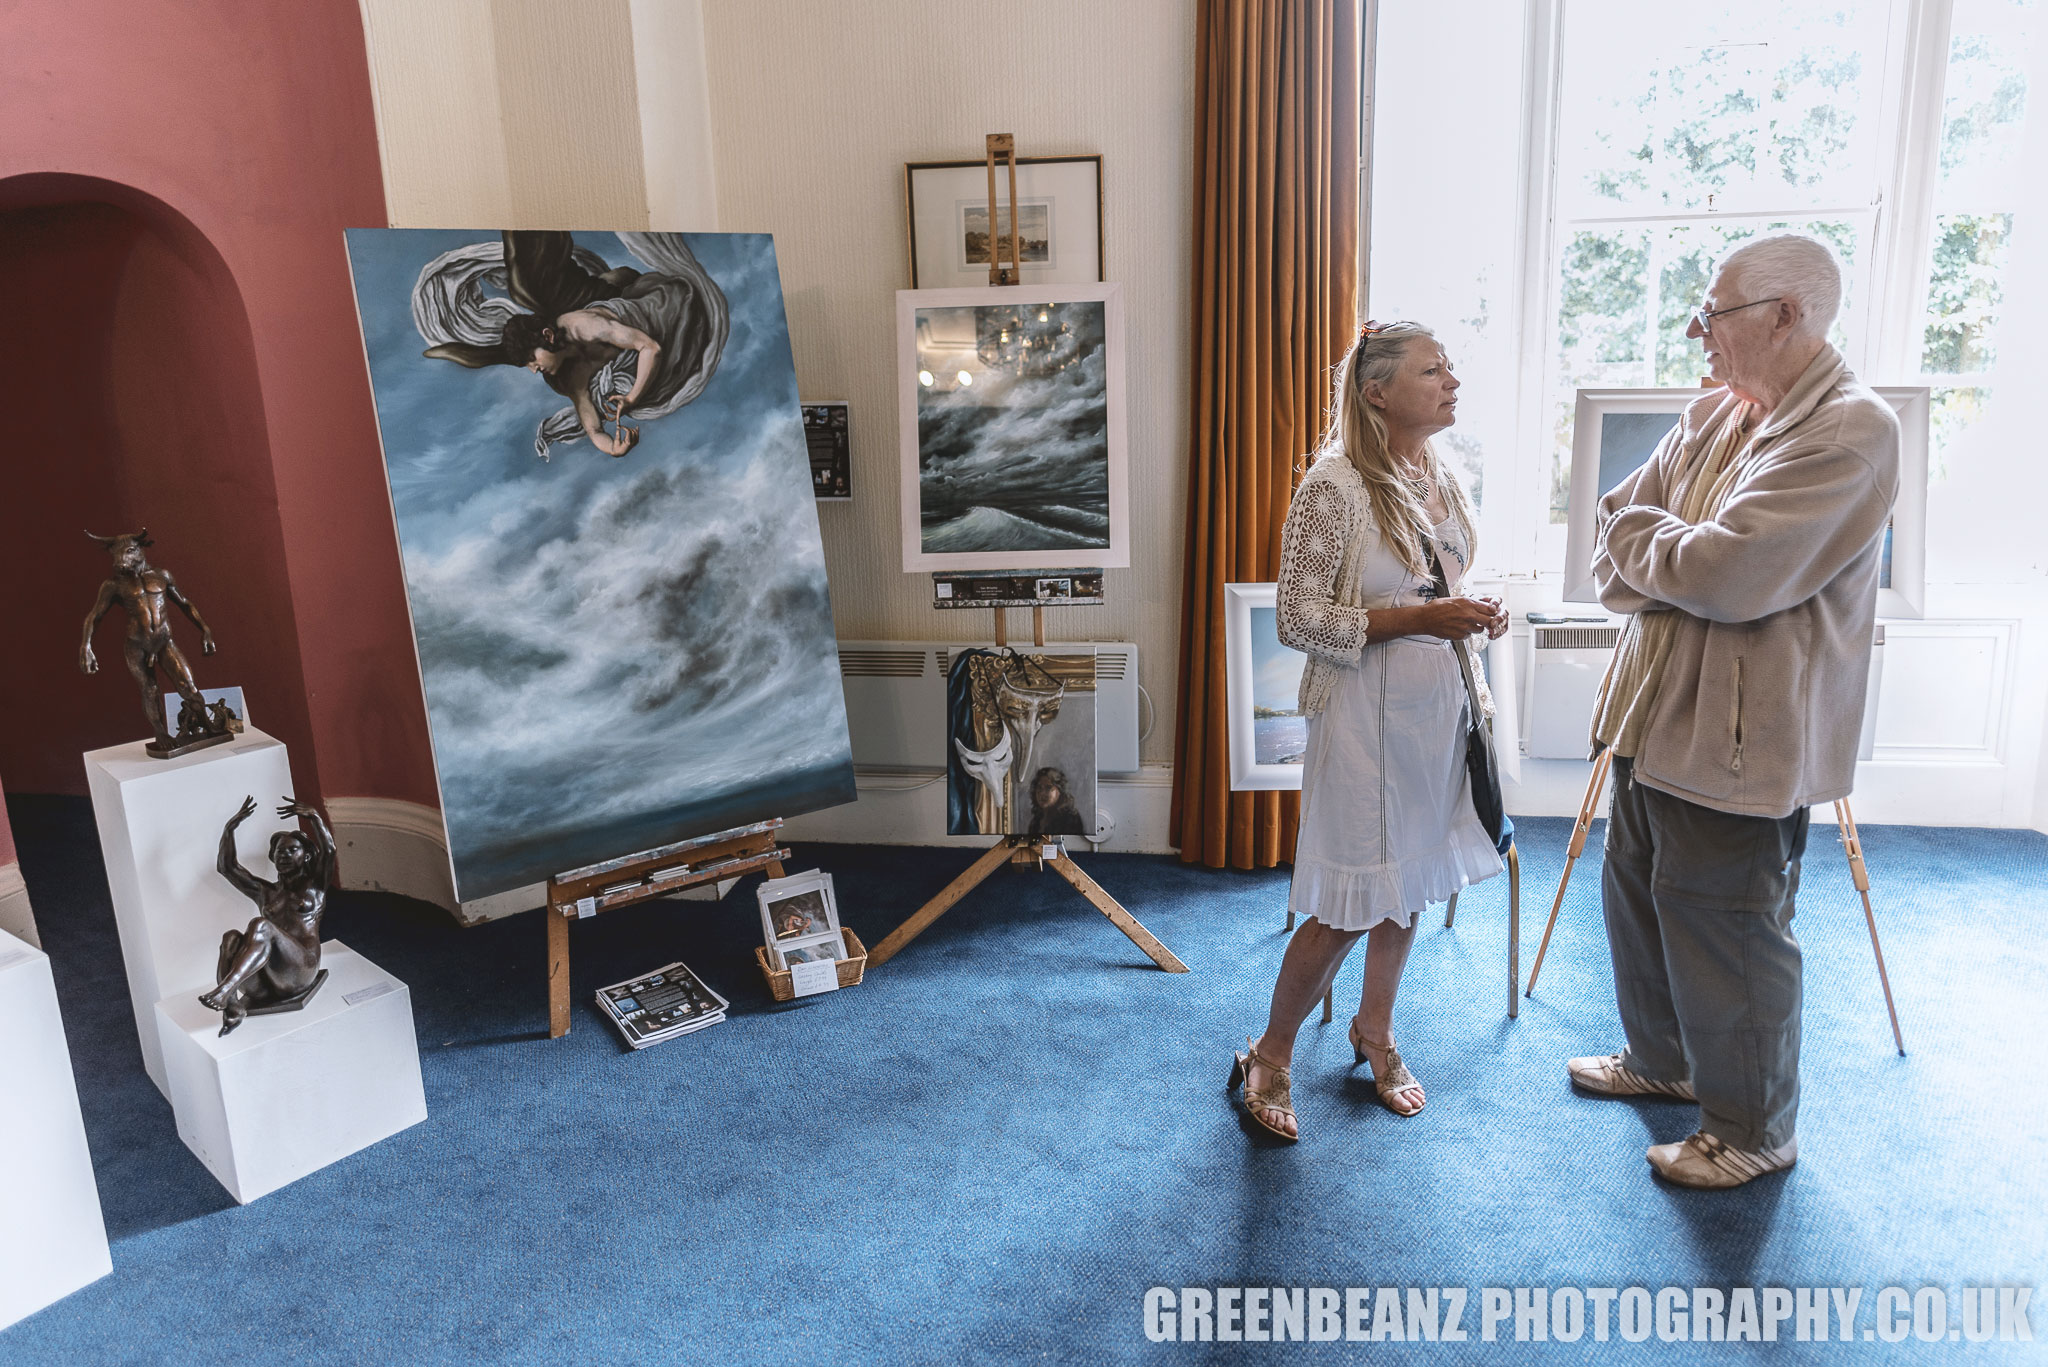 The Reuben Lenkiewicz Art Festival exhibited both local sculpture and paintings